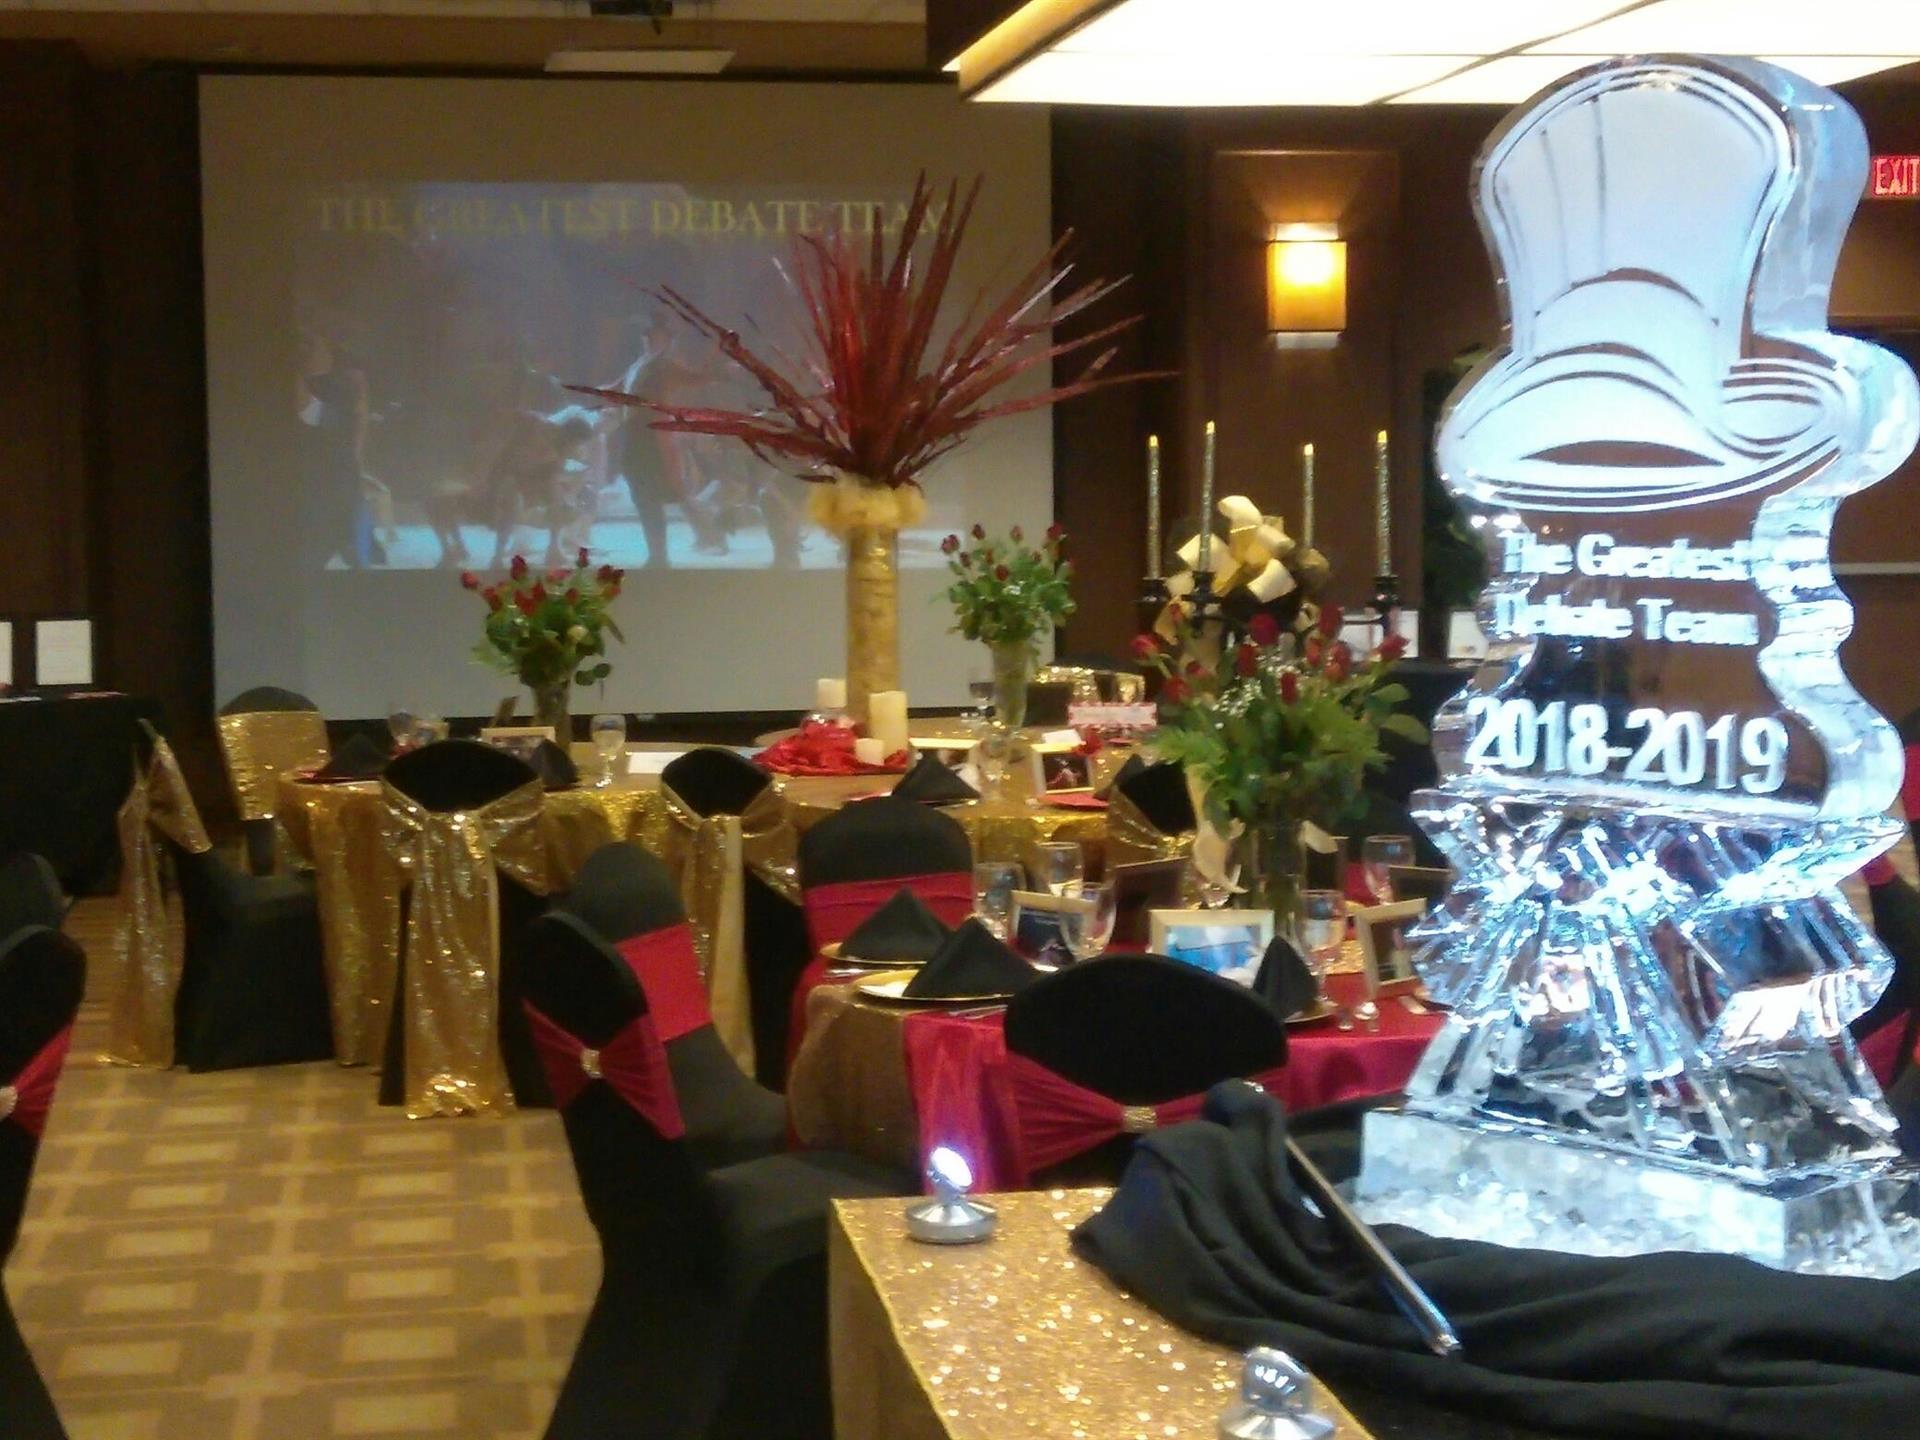 event space decorated for a debate team event with an ice sculpture